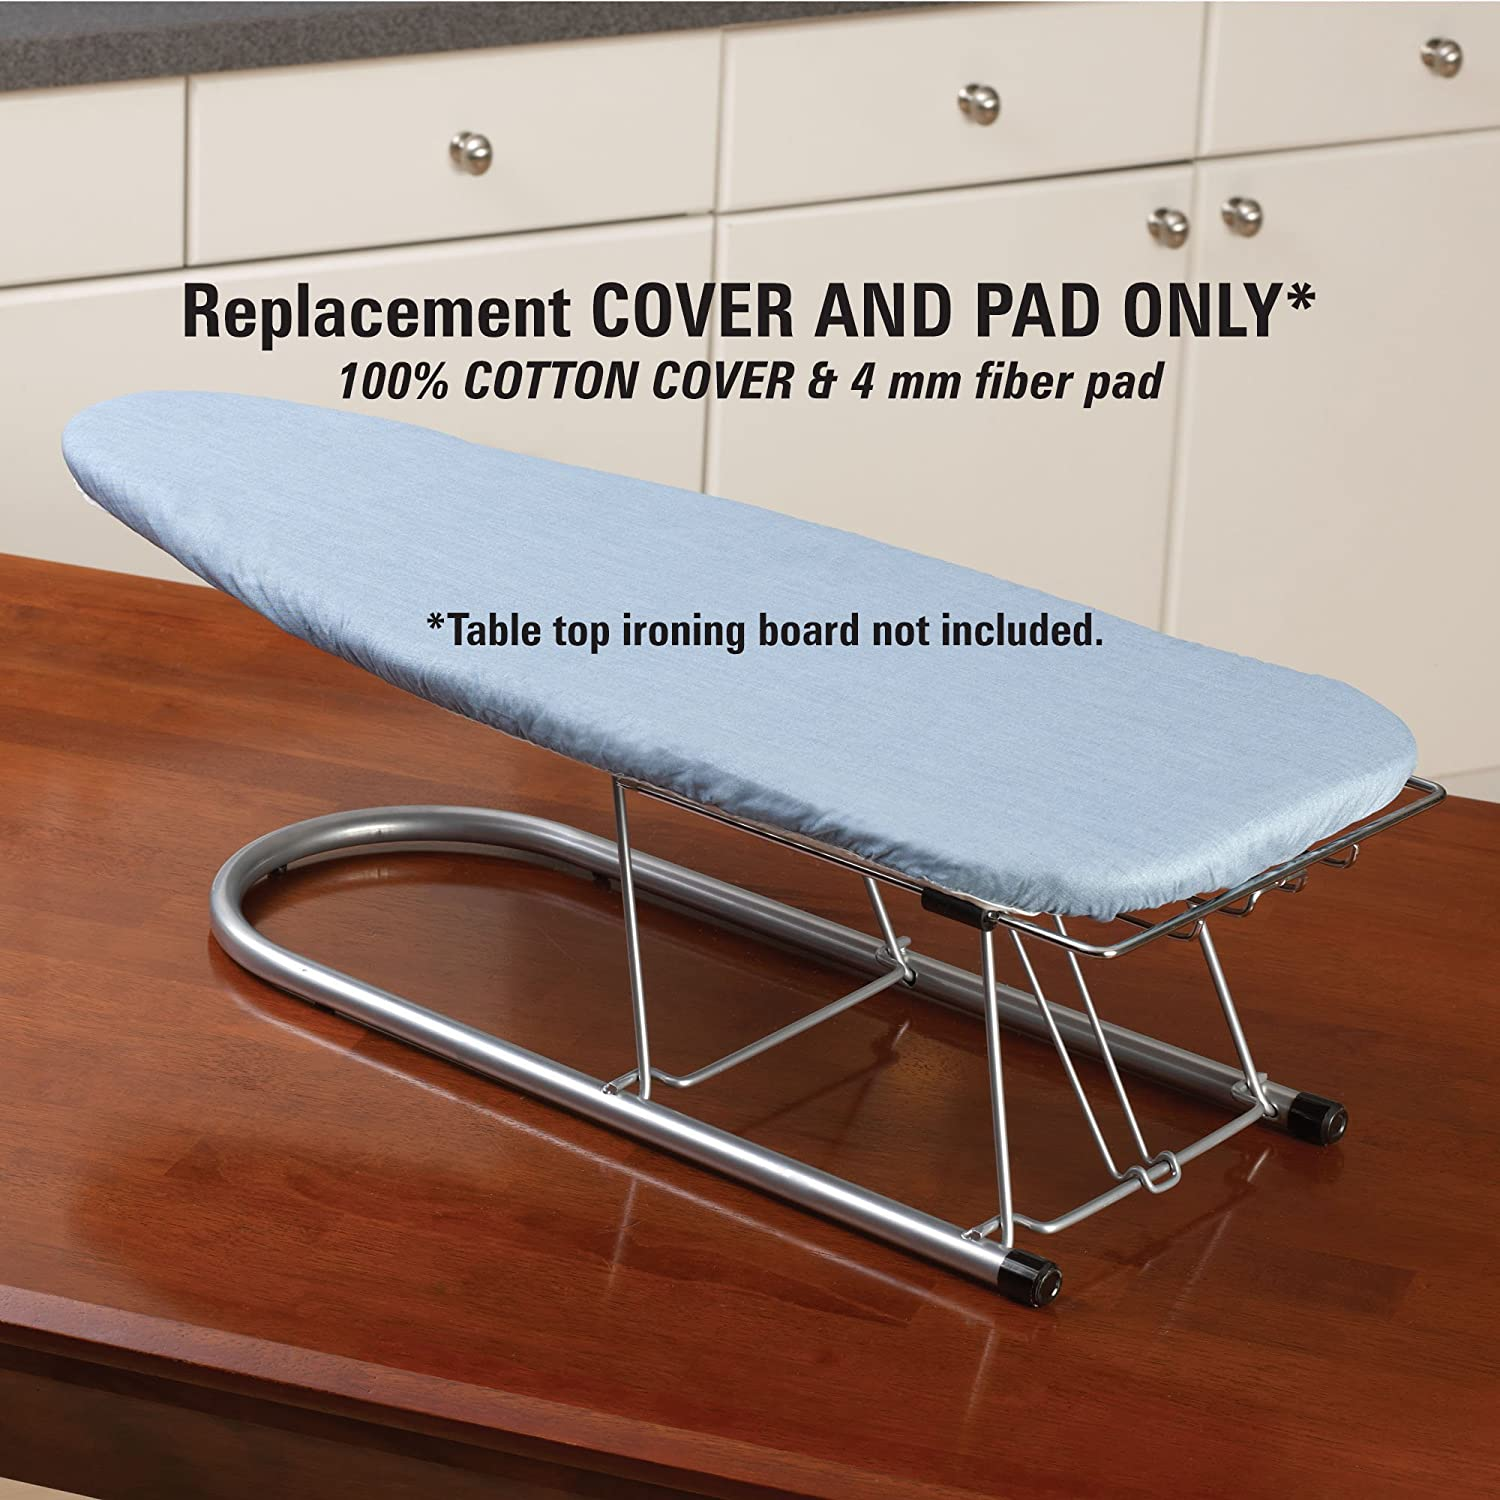 Lovely Amazon.com: Household Essentials Replacement Cover For Tabletop Small Ironing  Boards, Blue Silicone Coated: Home U0026 Kitchen